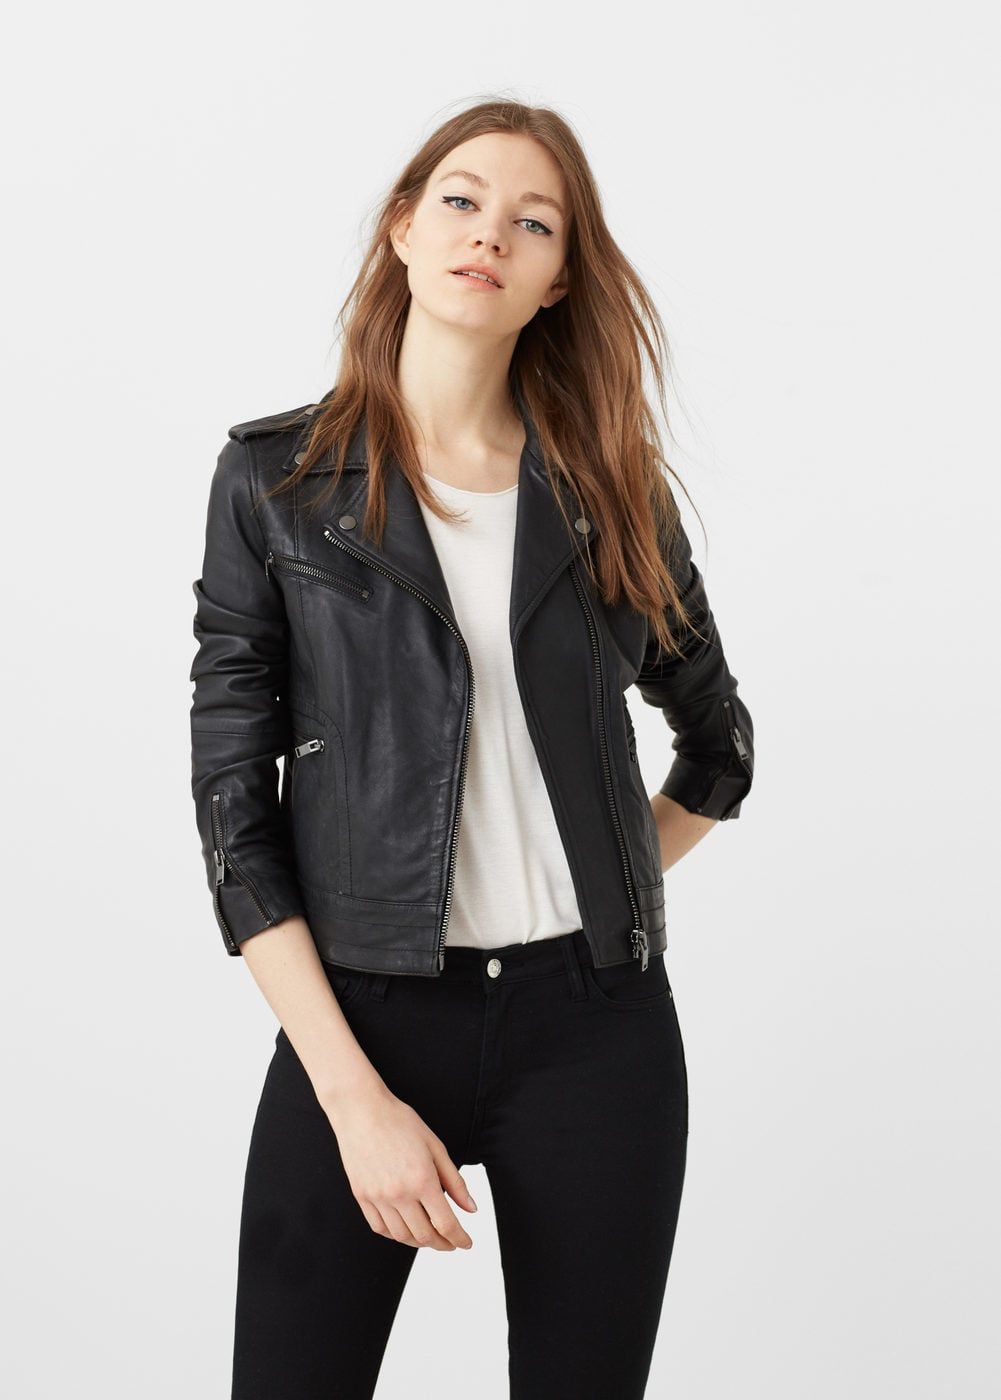 844476a3f Leather biker jacket - Women | OUTLET USA | Hold over | Jackets, Buy ...